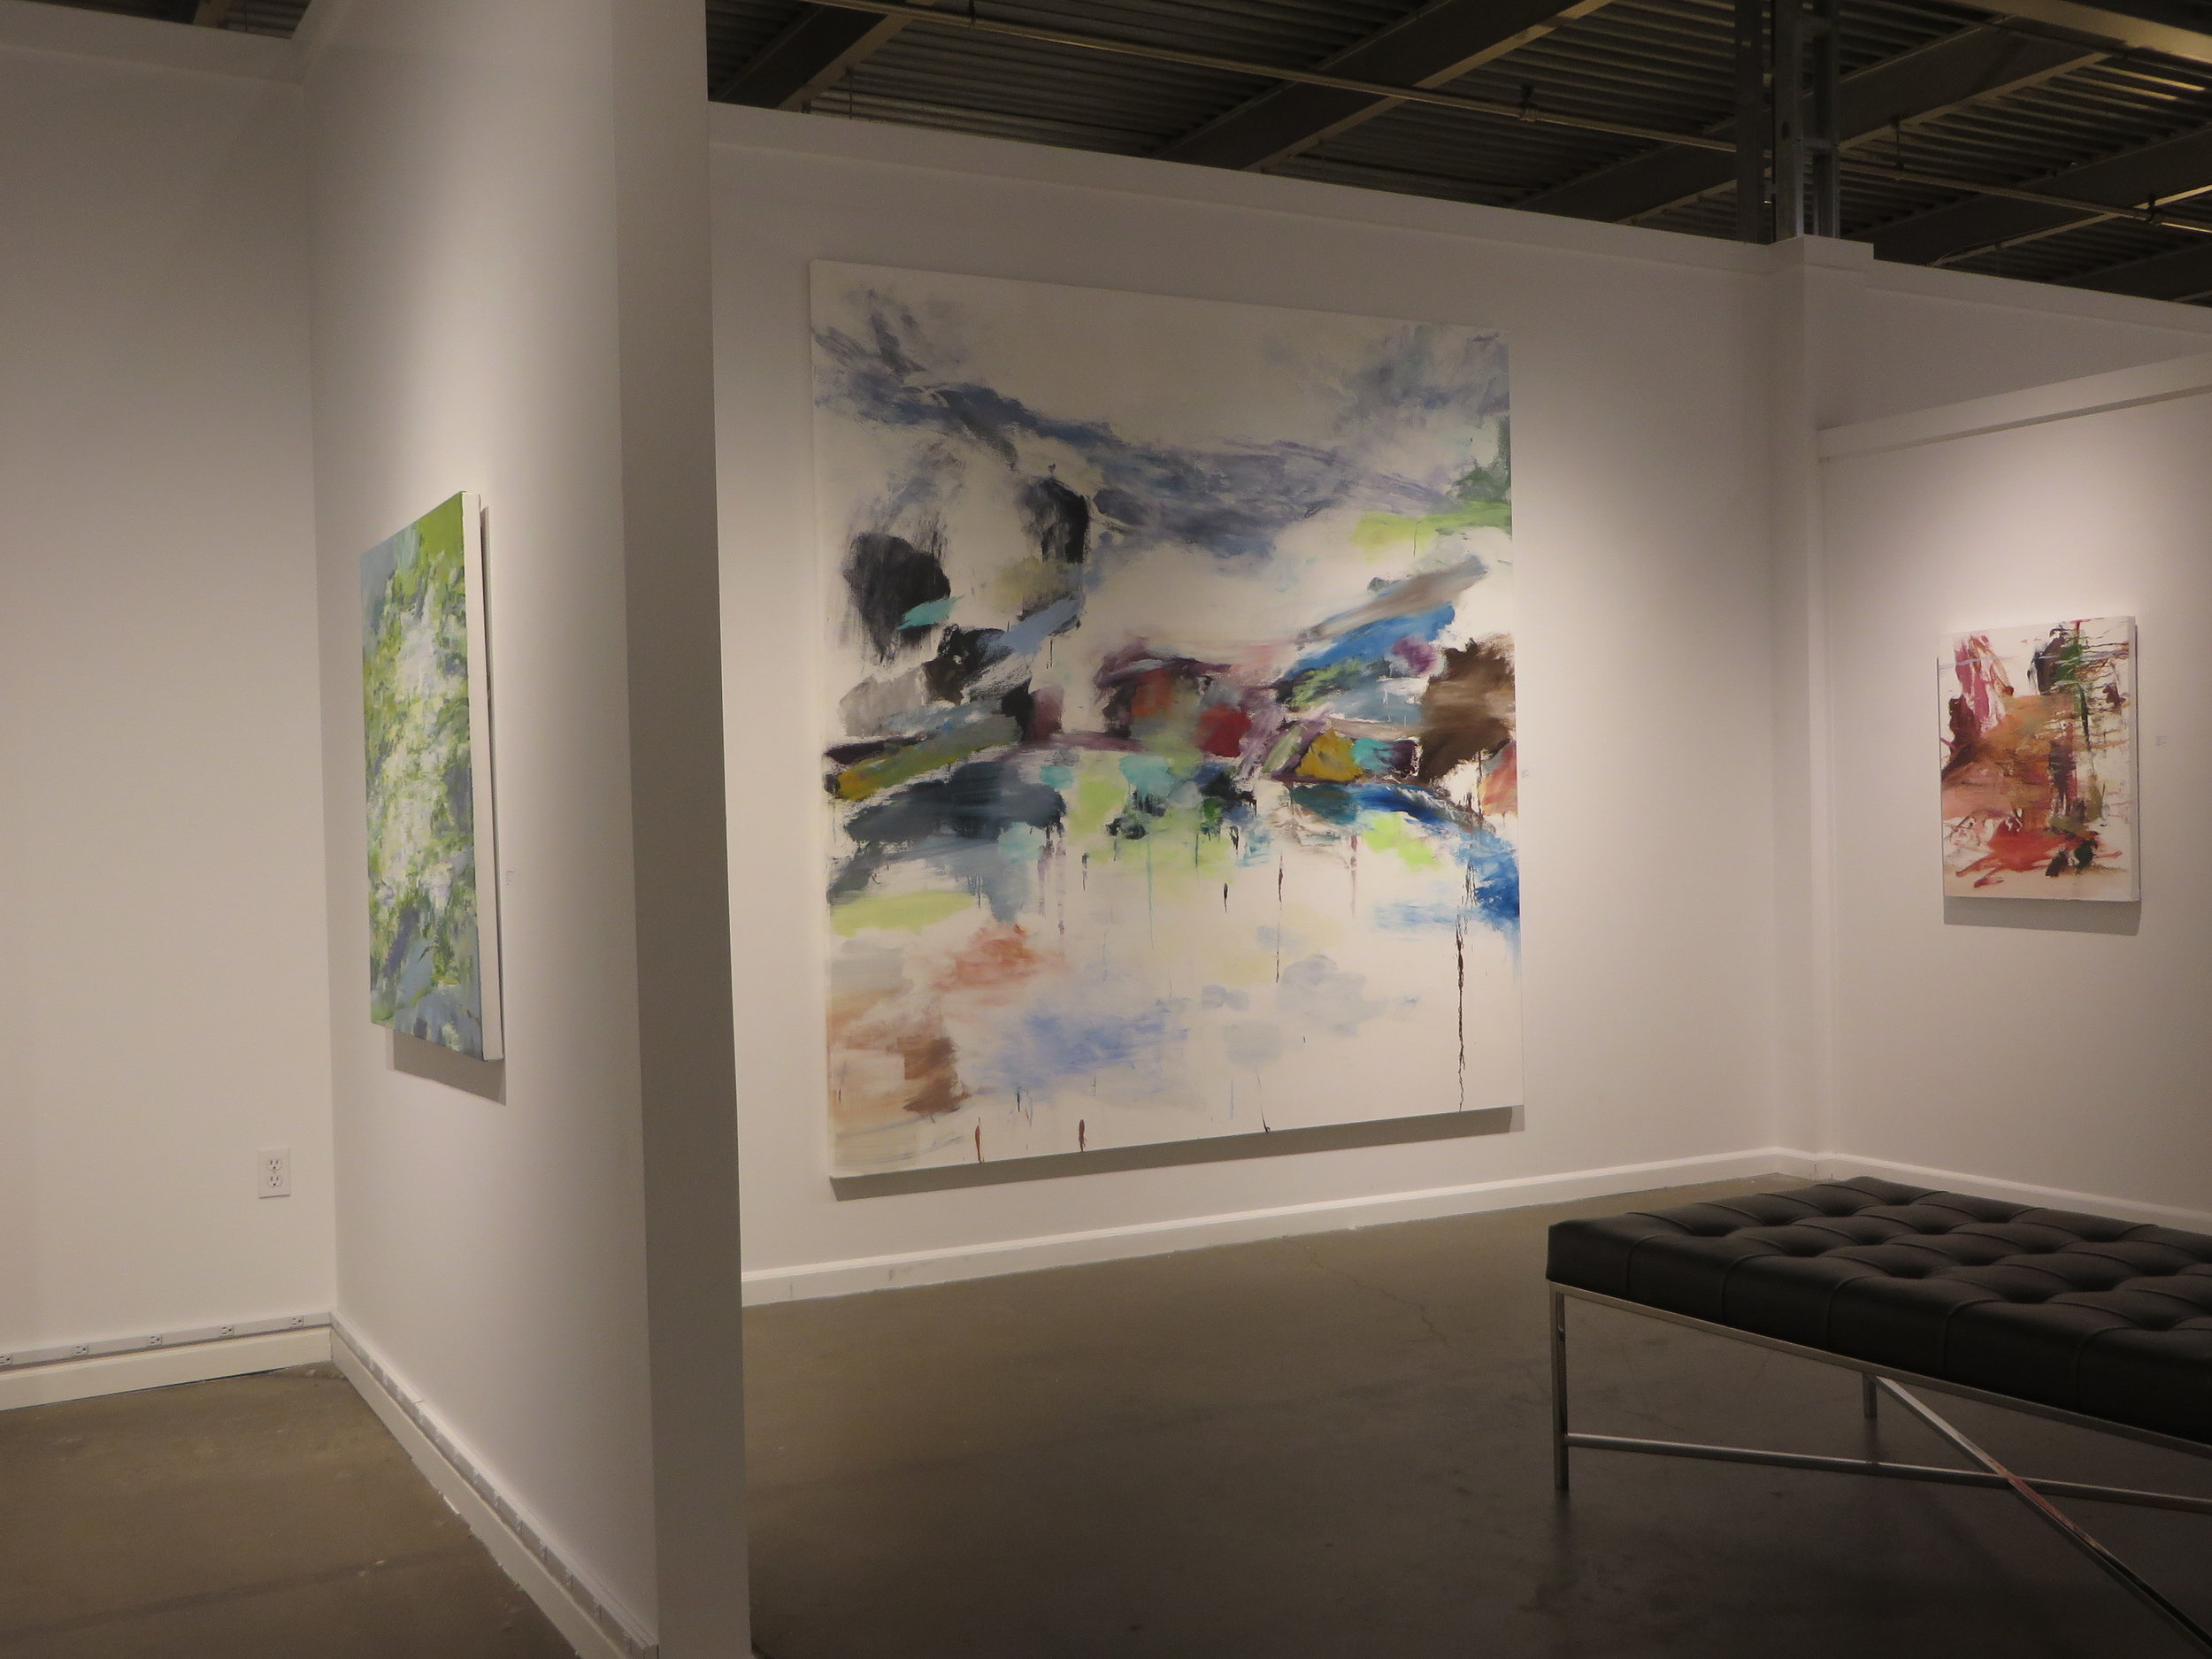 Real Abstract, Installation view 7